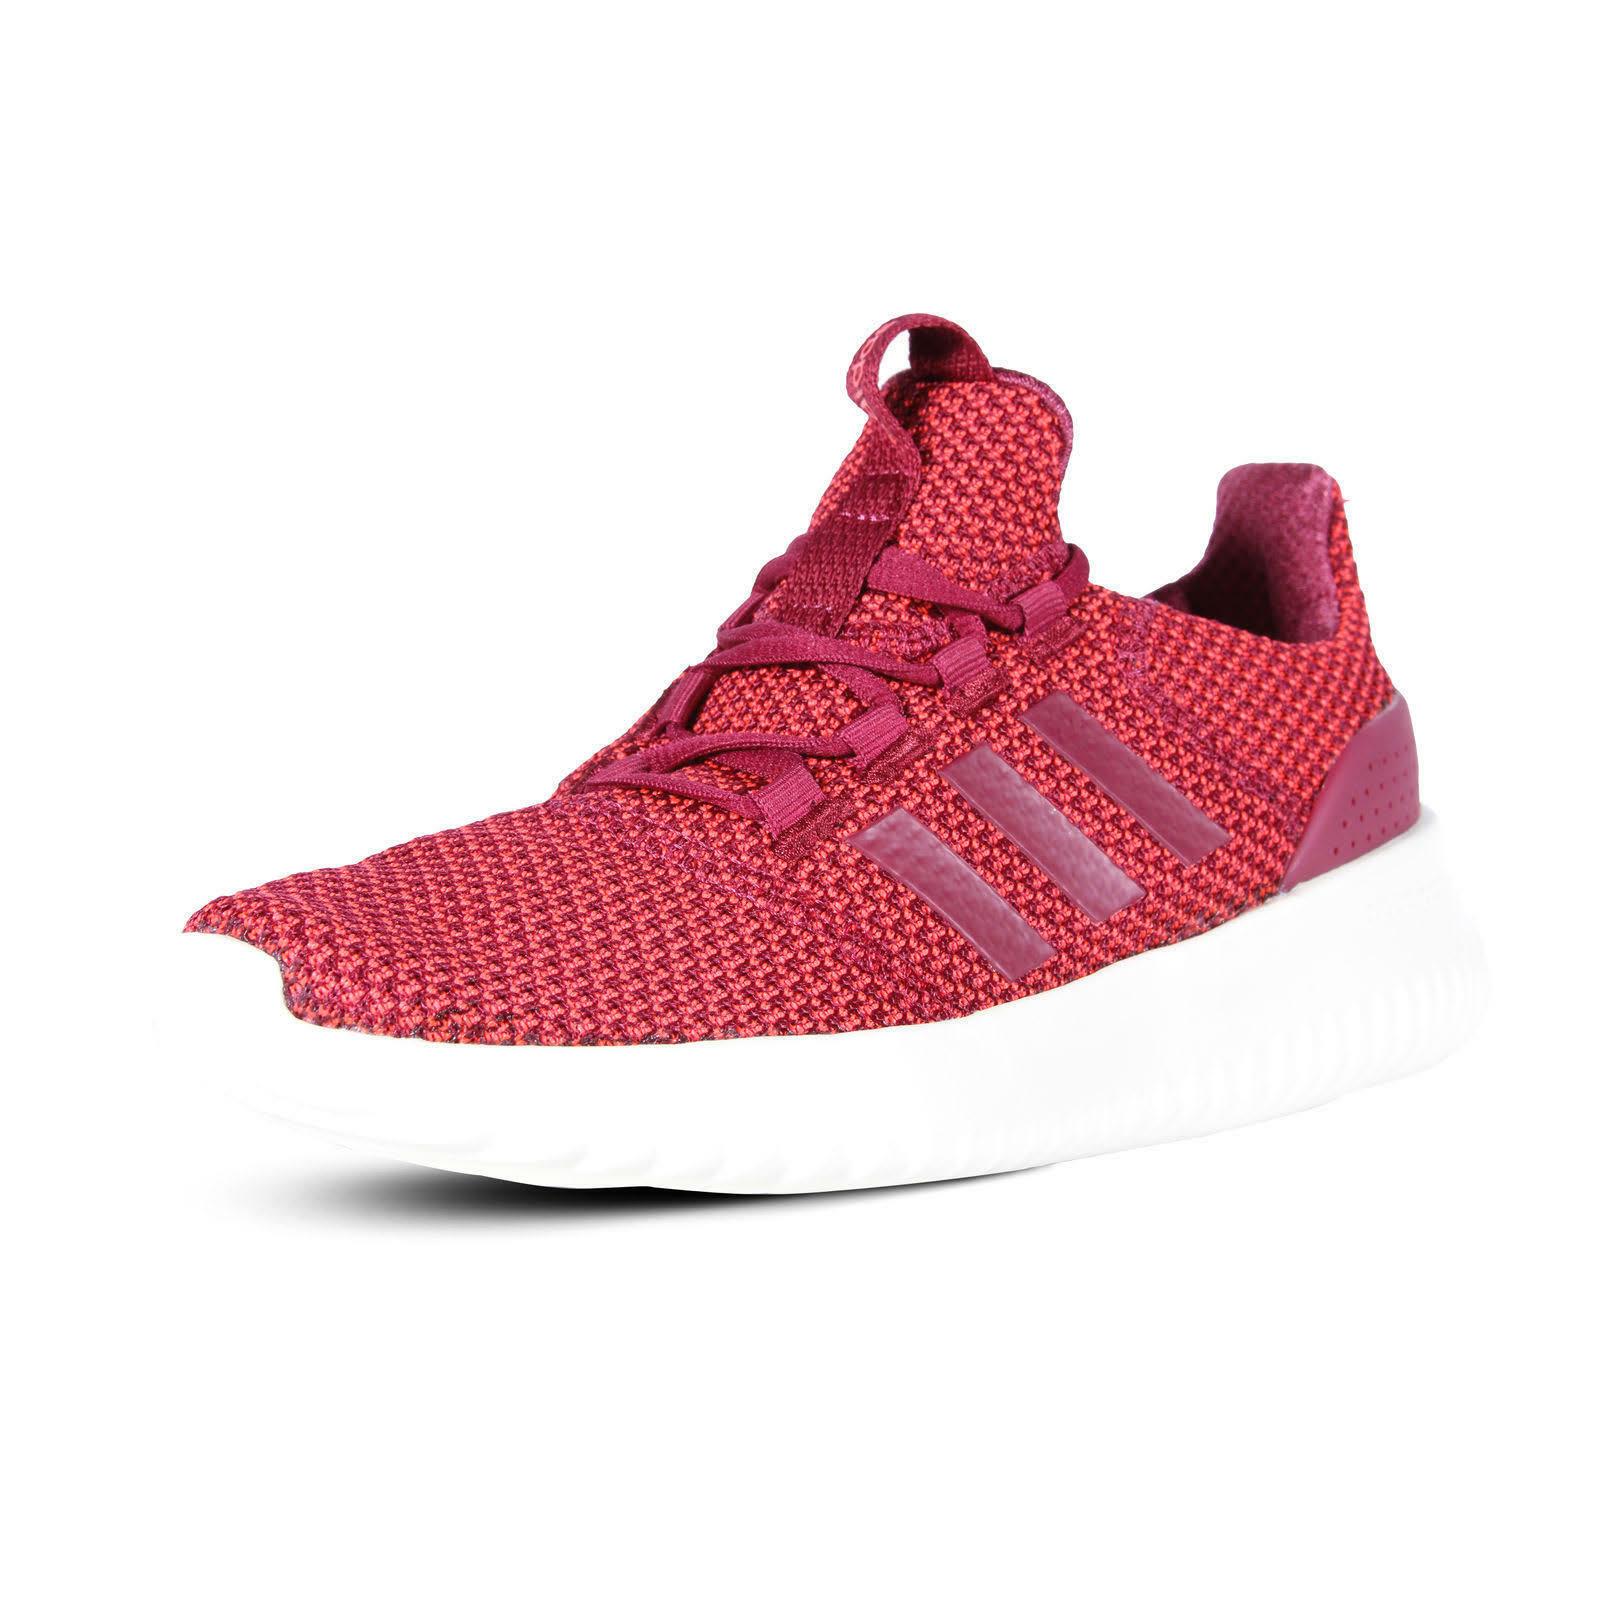 New Adidas women athletic sneakers. Red running shoes size 9 Cloudfoam Ultimate